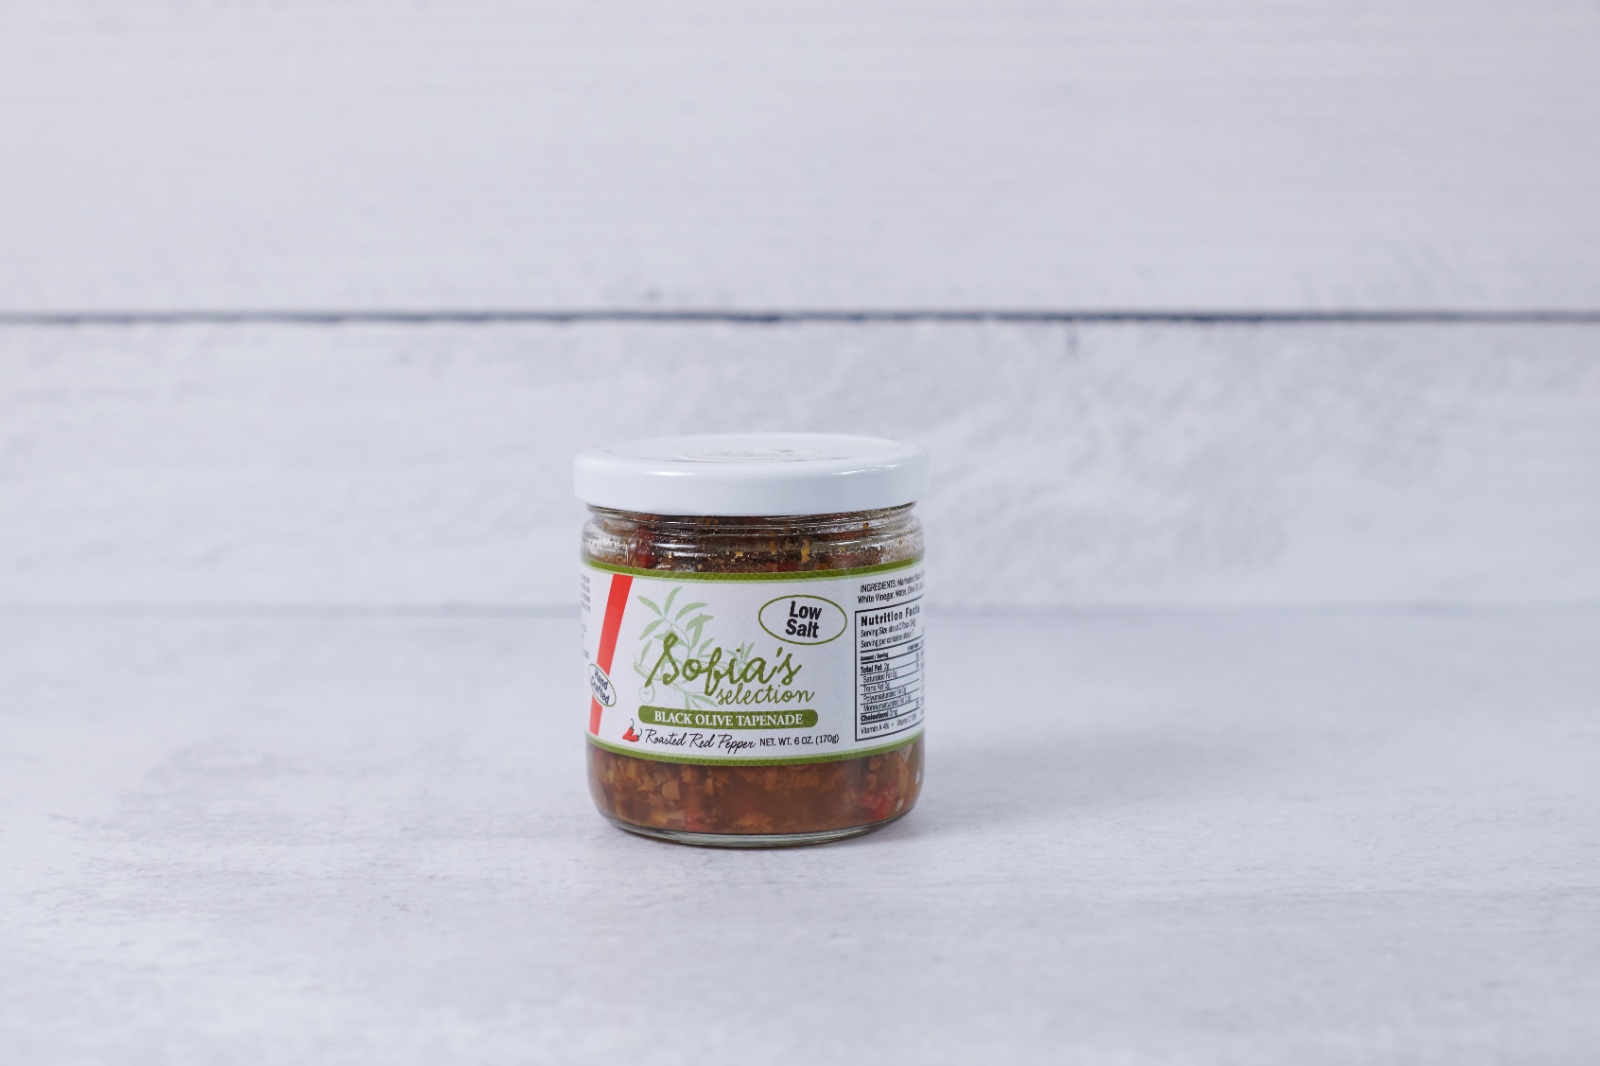 sofias-selection-roasted-red-pepper-olive-tapenade